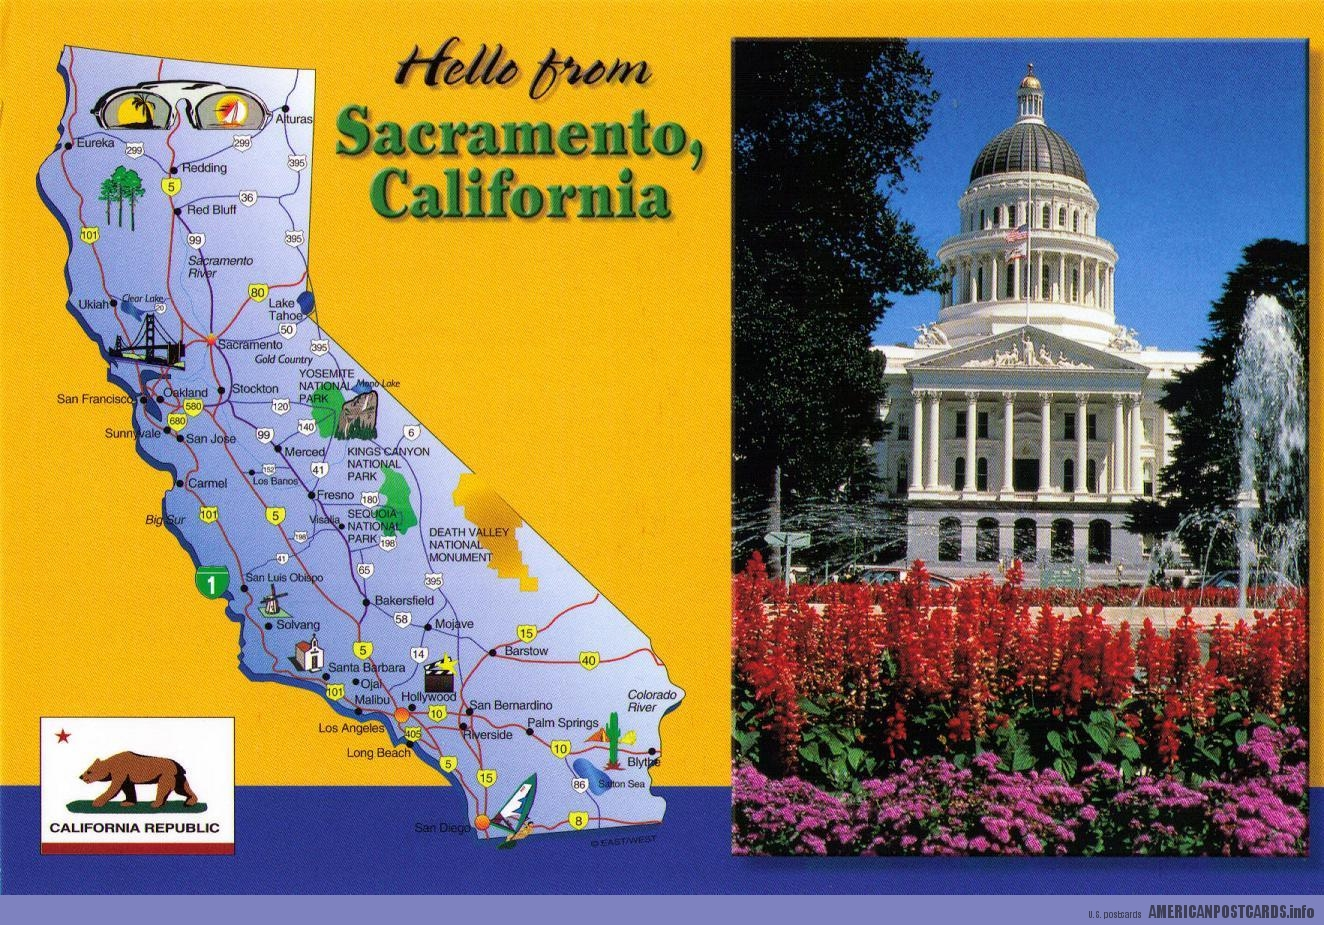 What's Going on in Sacramento? - CalNonprofits